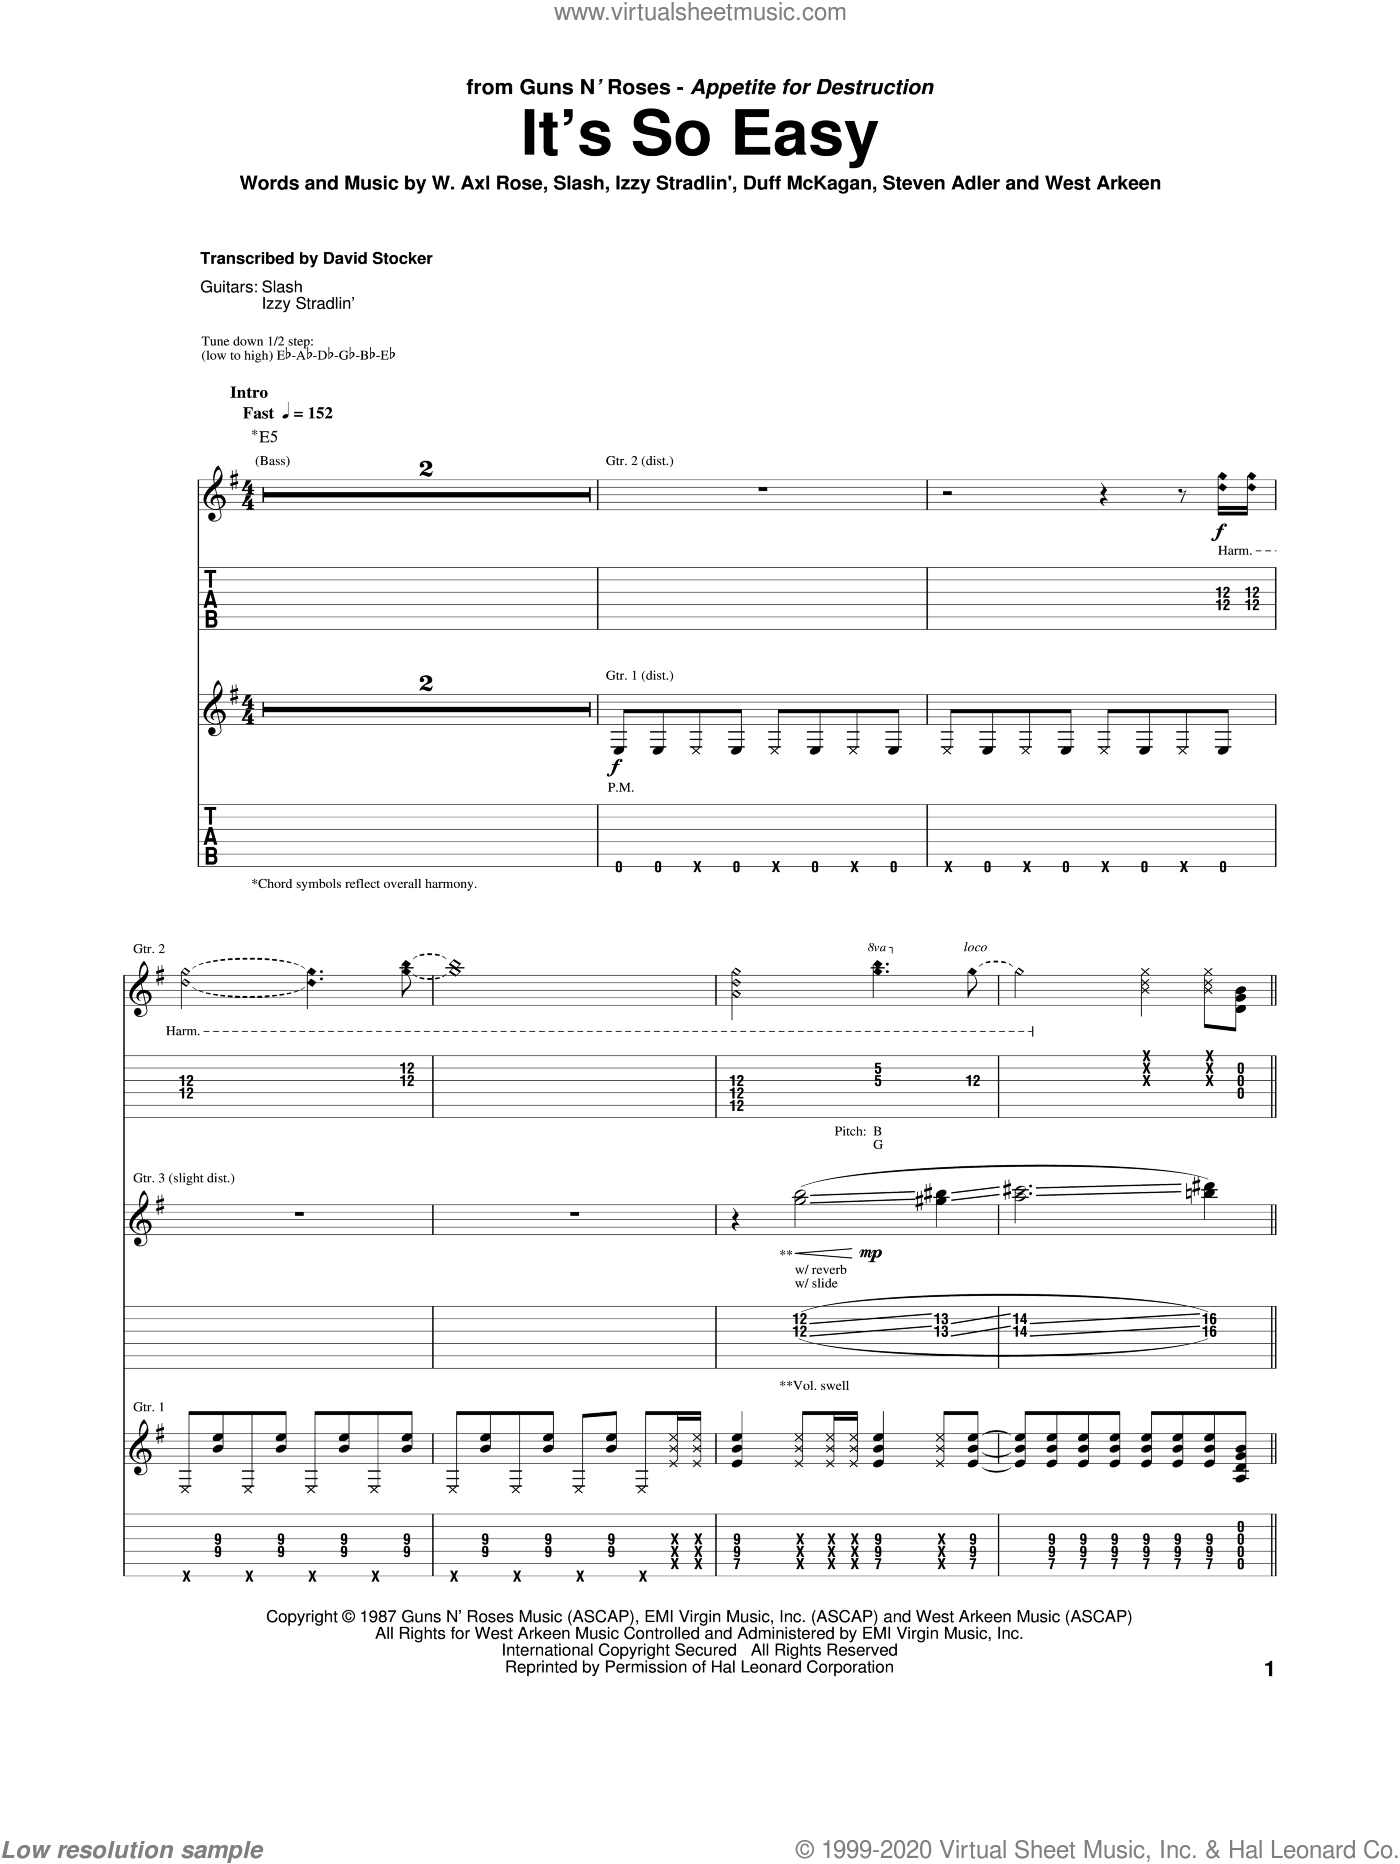 It's So Easy sheet music for guitar (tablature) by West Arkeen